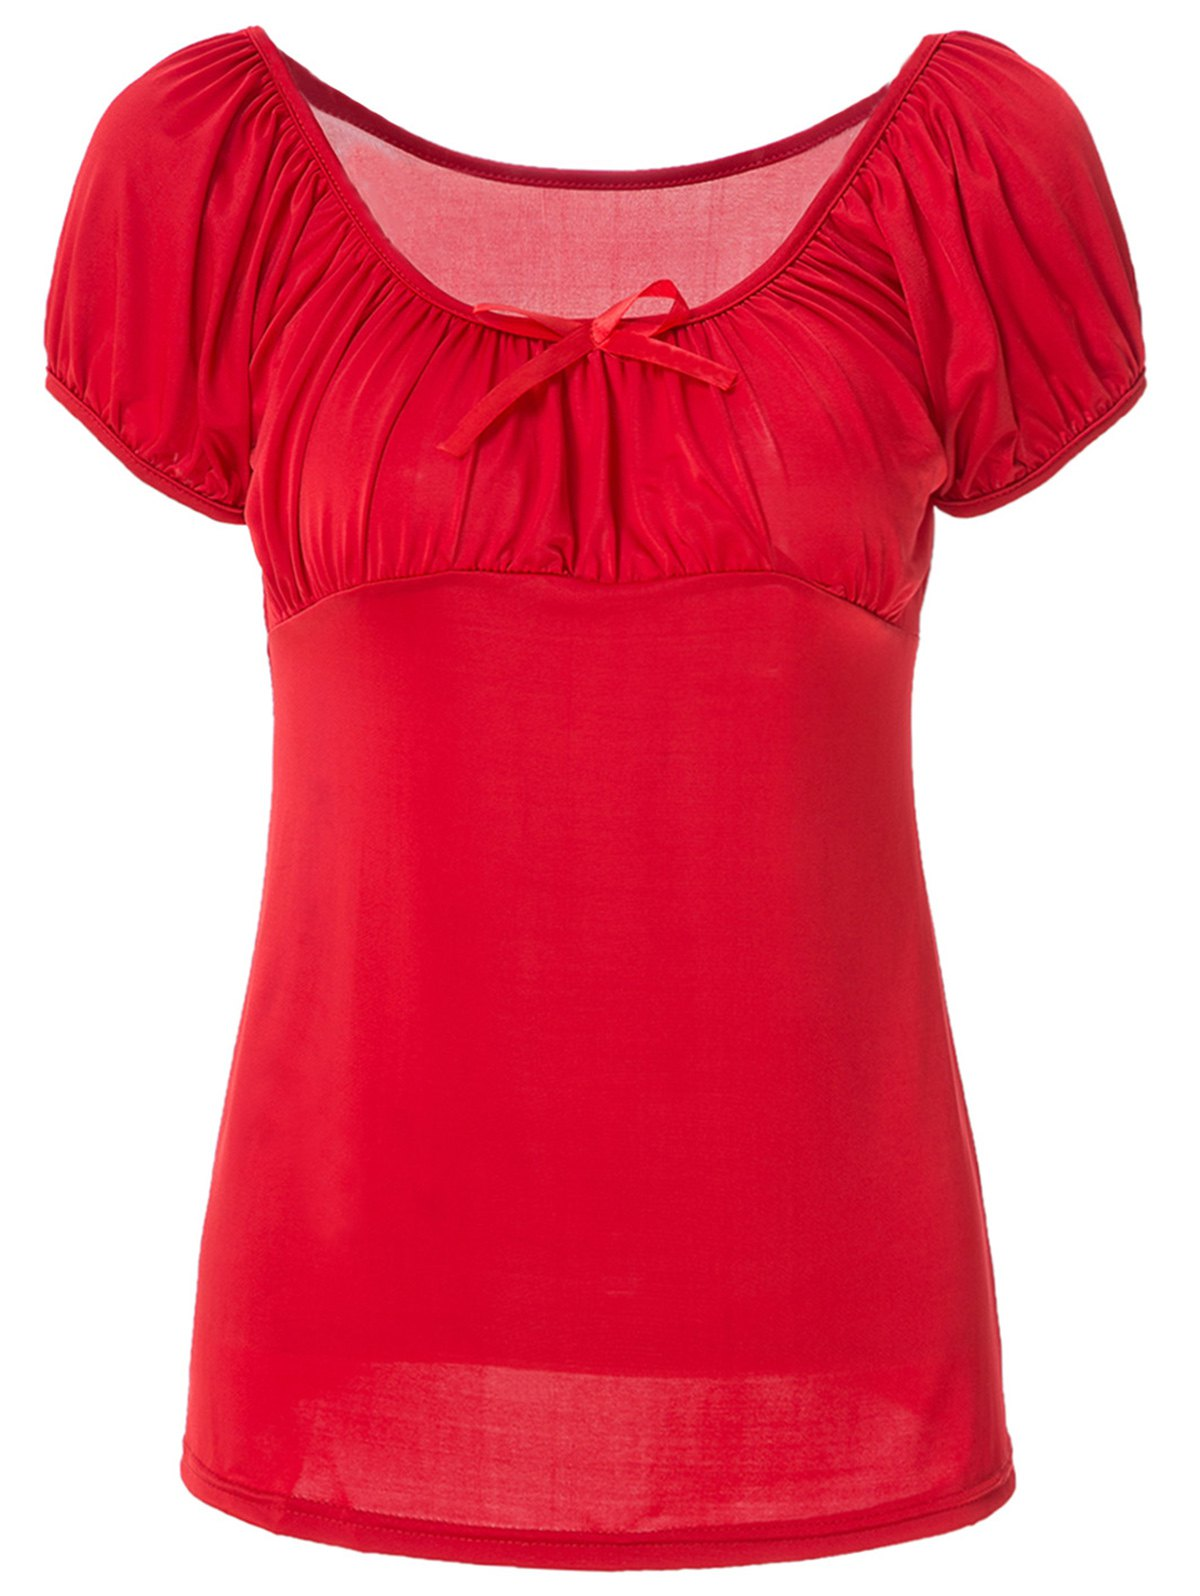 Noble Boat Neck Pure Color Bowknot Ruffled T-Shirt For Women - RED L